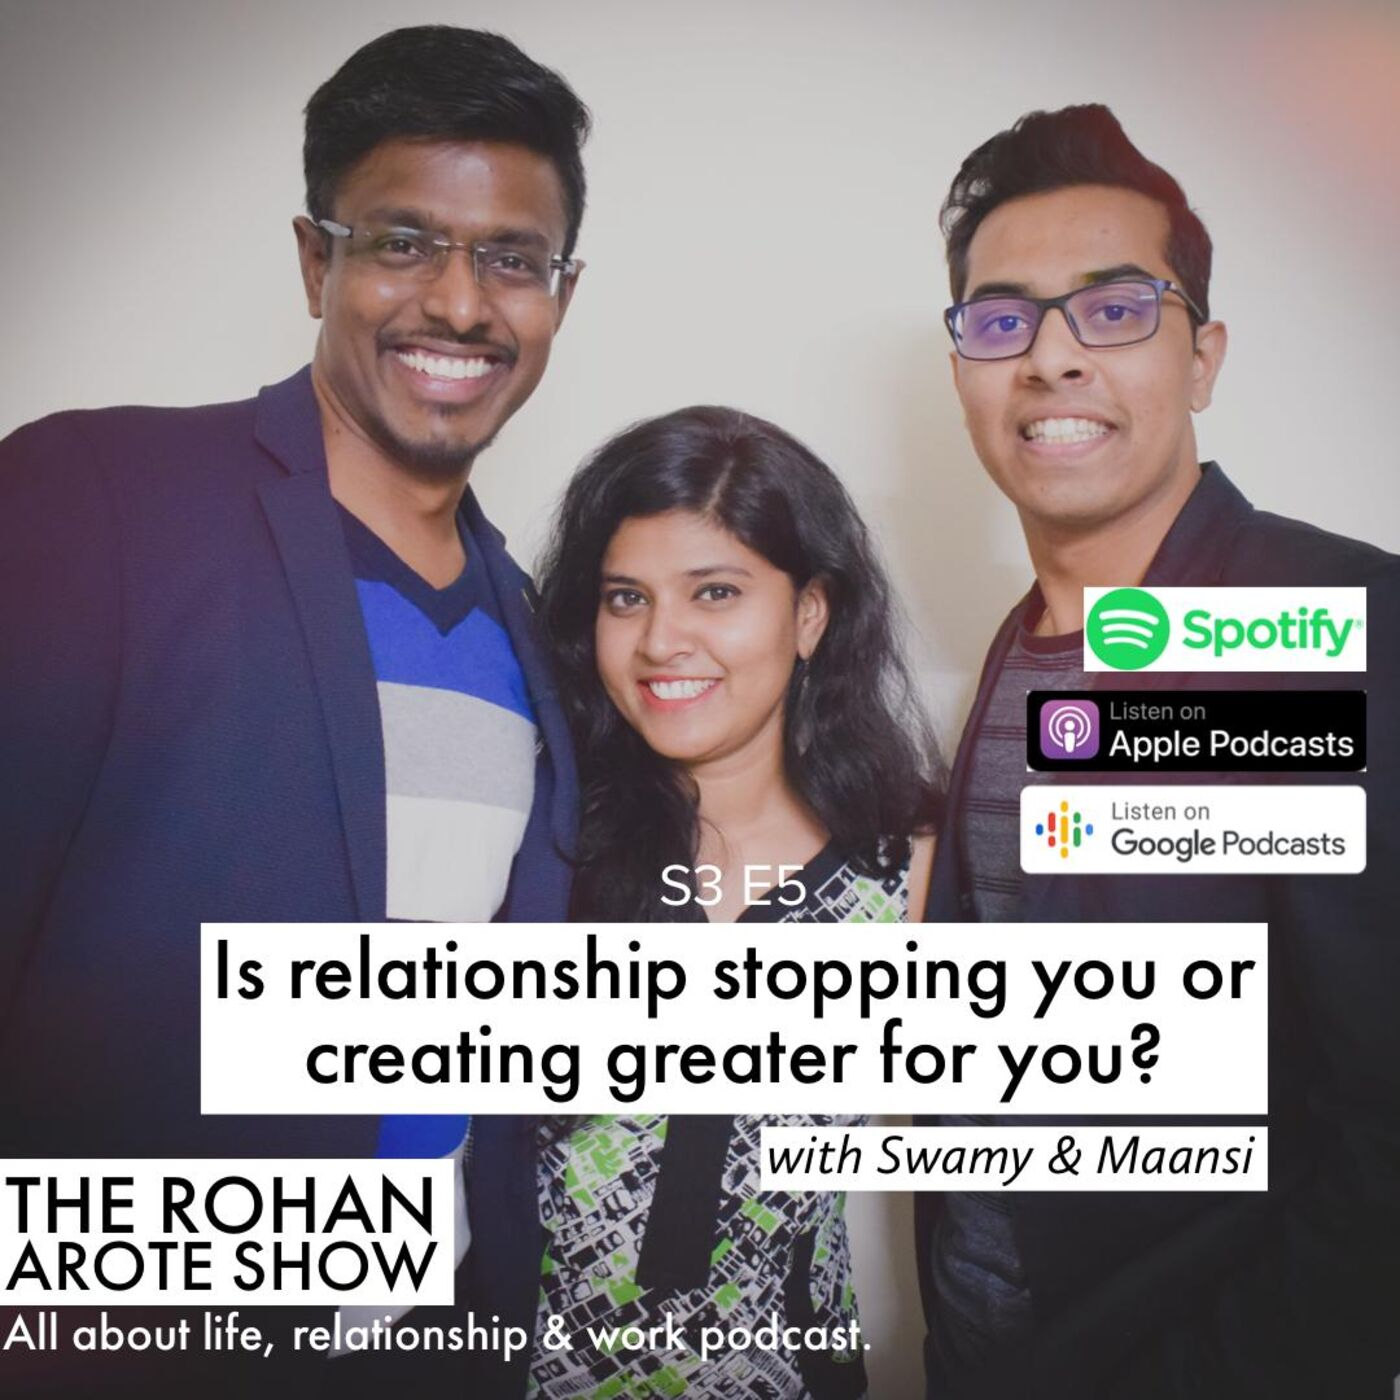 Is relationship stopping you or creating greater for you?